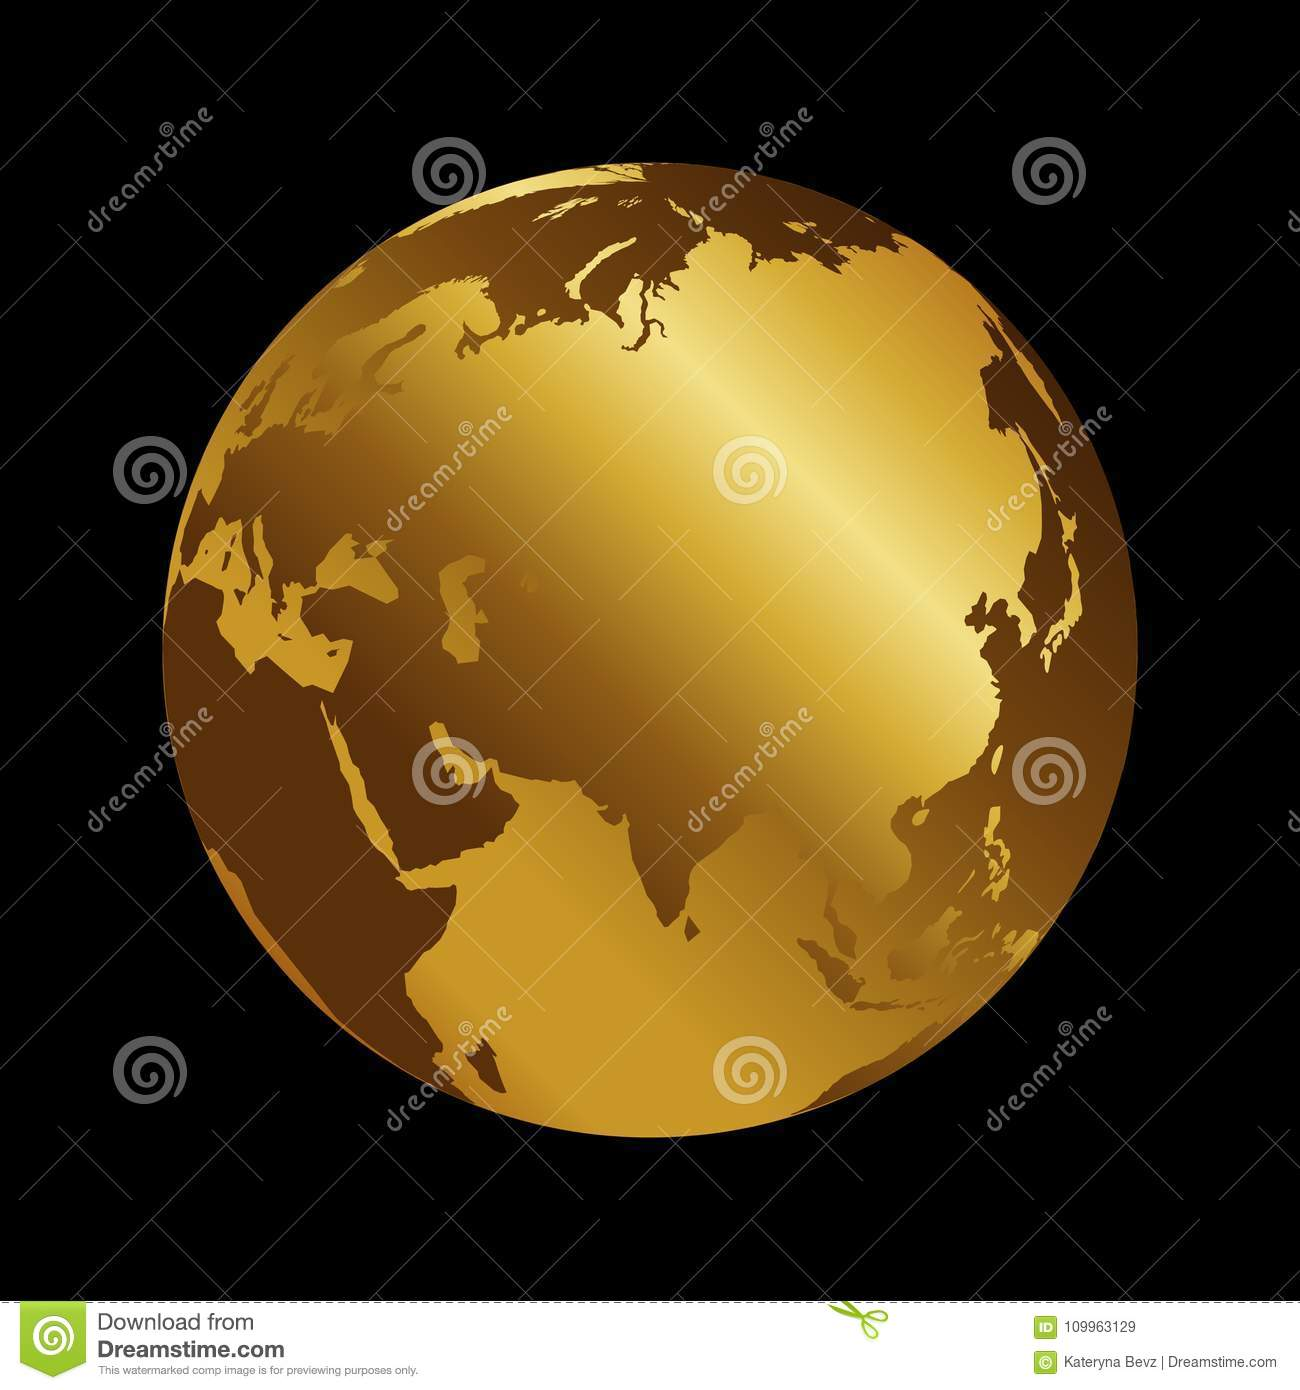 Asia golden 3d metal planet backdrop view russia india and china download asia golden 3d metal planet backdrop view russia india and china world map gumiabroncs Image collections